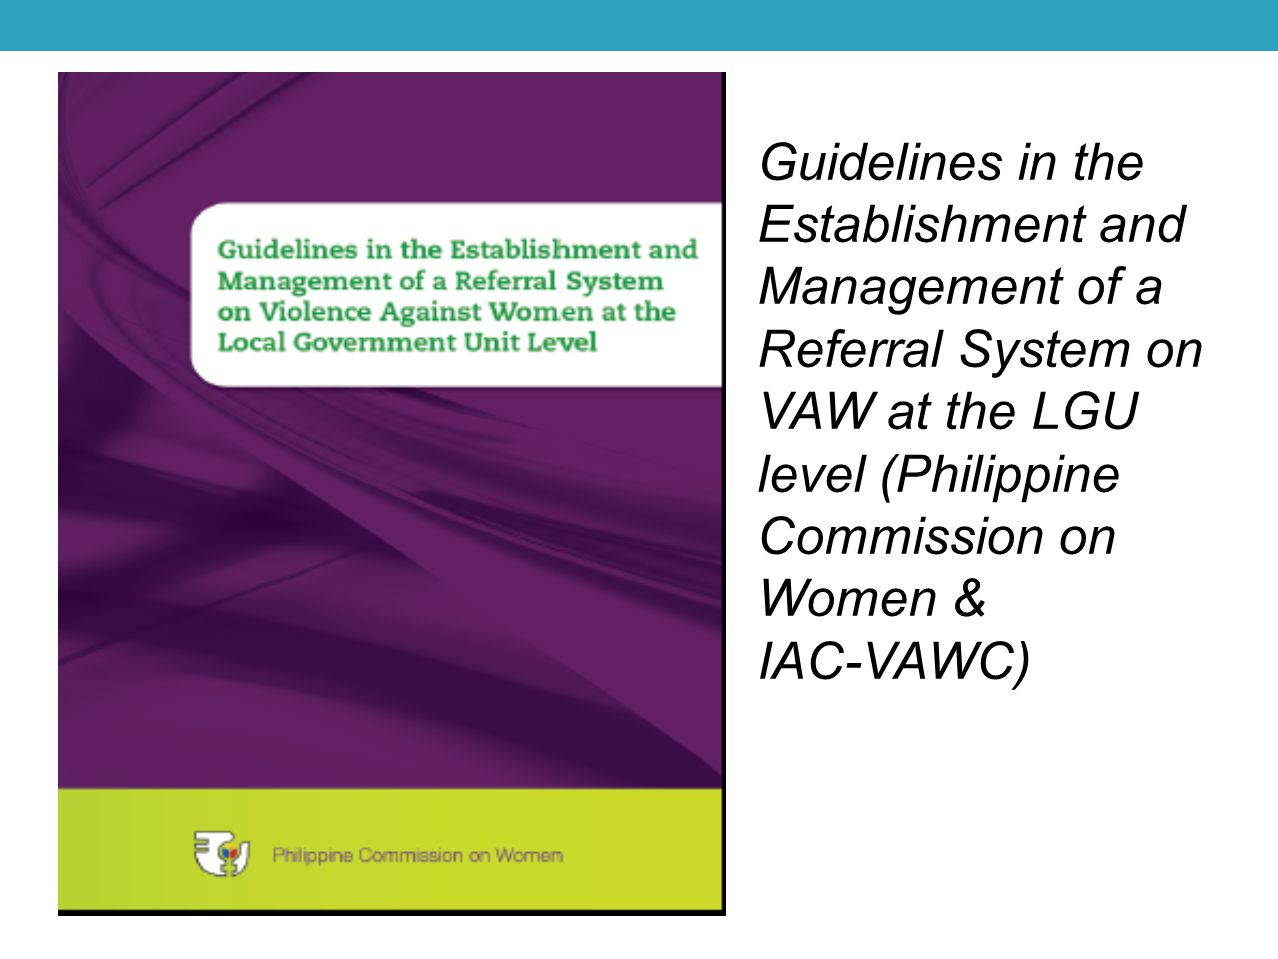 Guidelines in the Establishment and Management of a Referral System on VAW at the LGU level (Philippine Commission on Women &